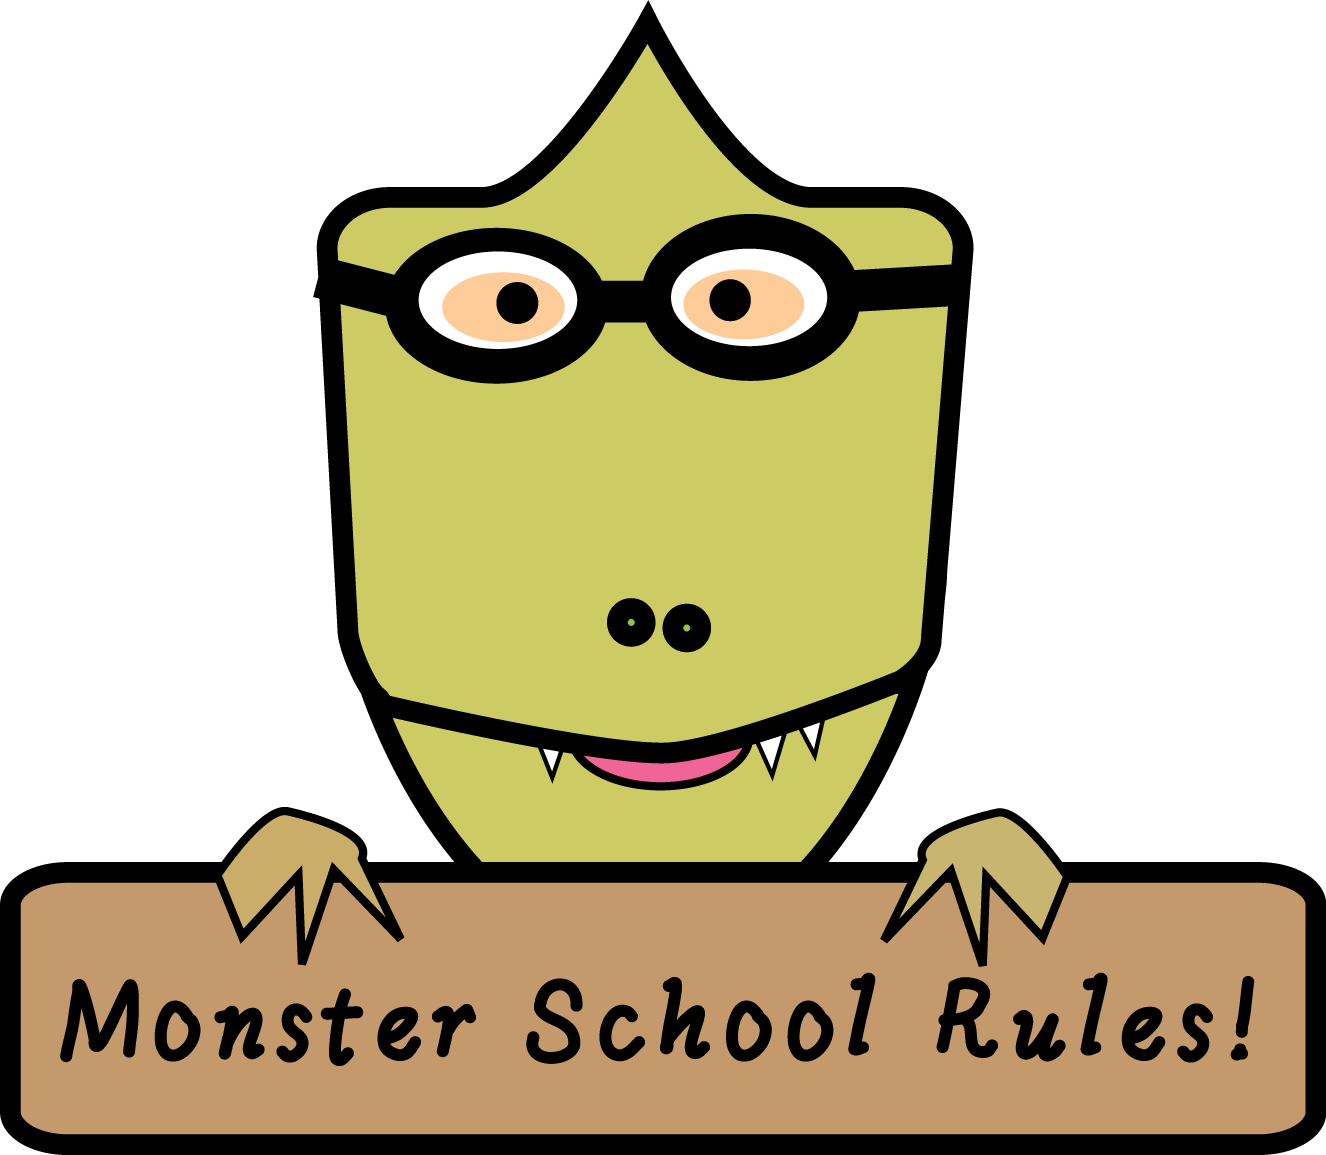 Free clipart rule book png transparent download Monster Addendum: 5 Free Clip Art Creatures. | Digital: Divide & Conquer png transparent download